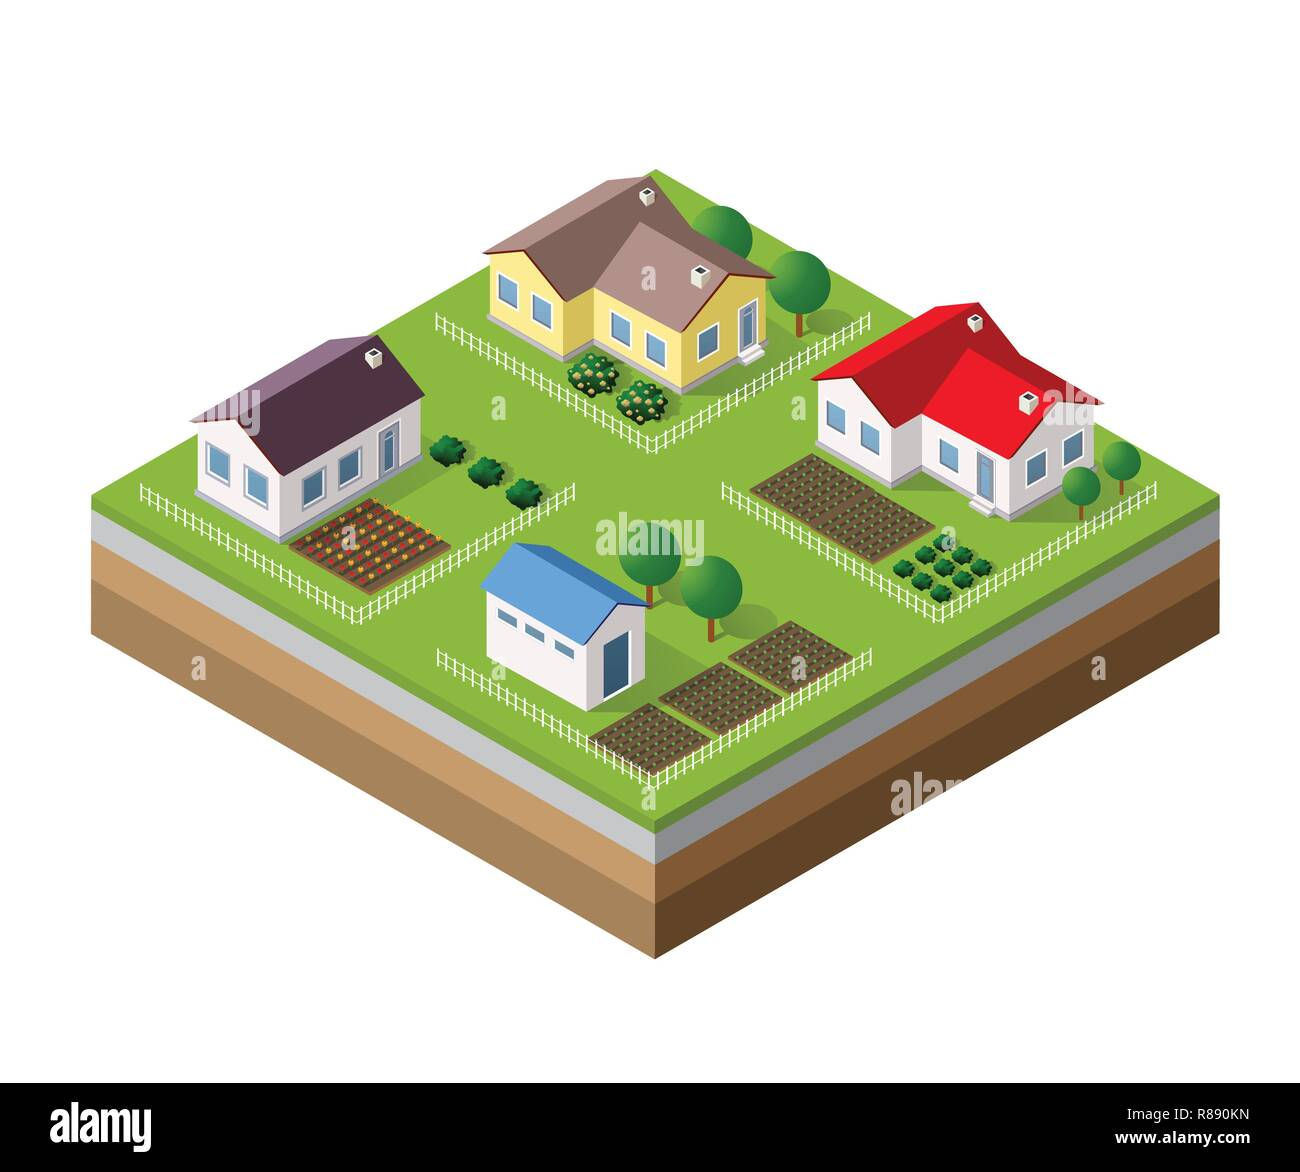 Farm set of houses in isometric style - Stock Image